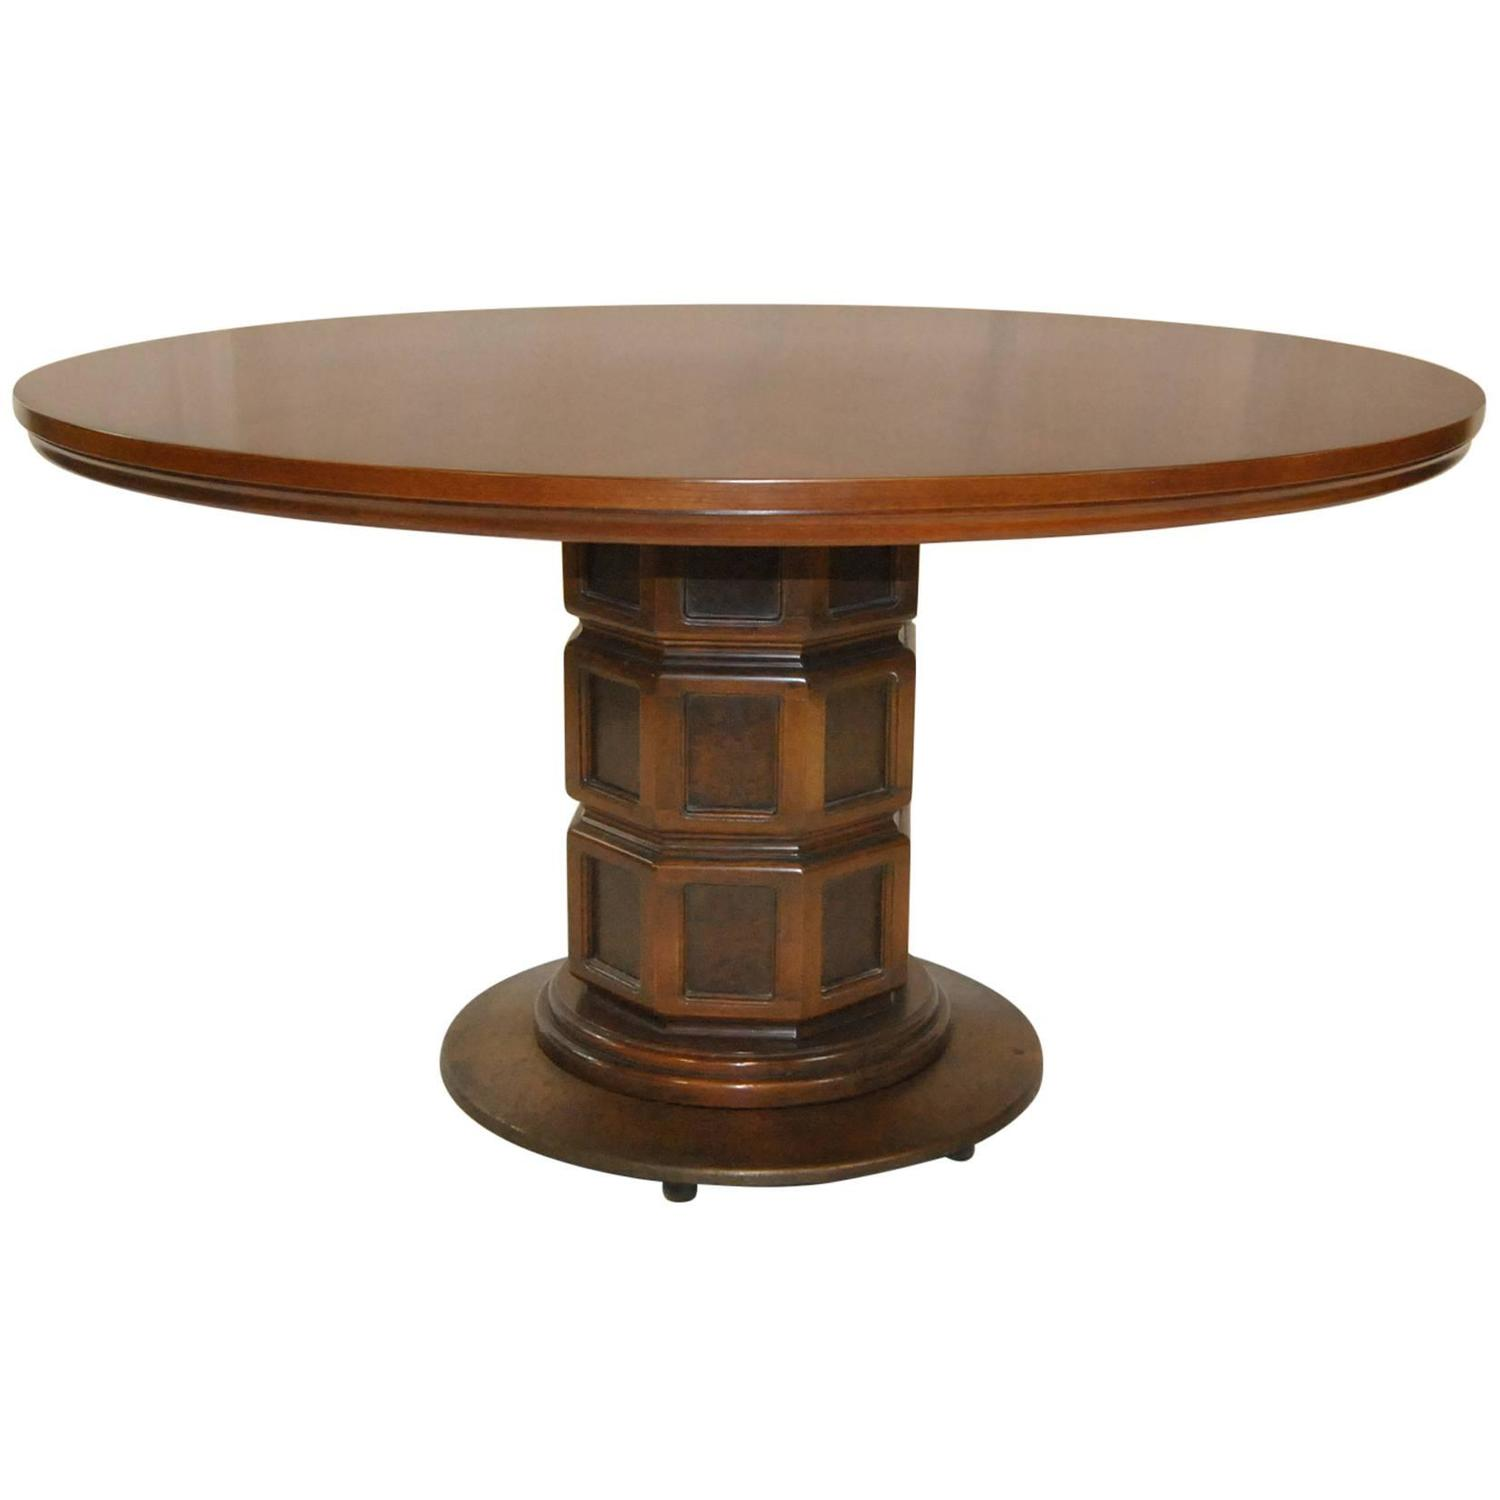 John Widdicomb Walnut Round Pedestal Base Table At 1stdibs